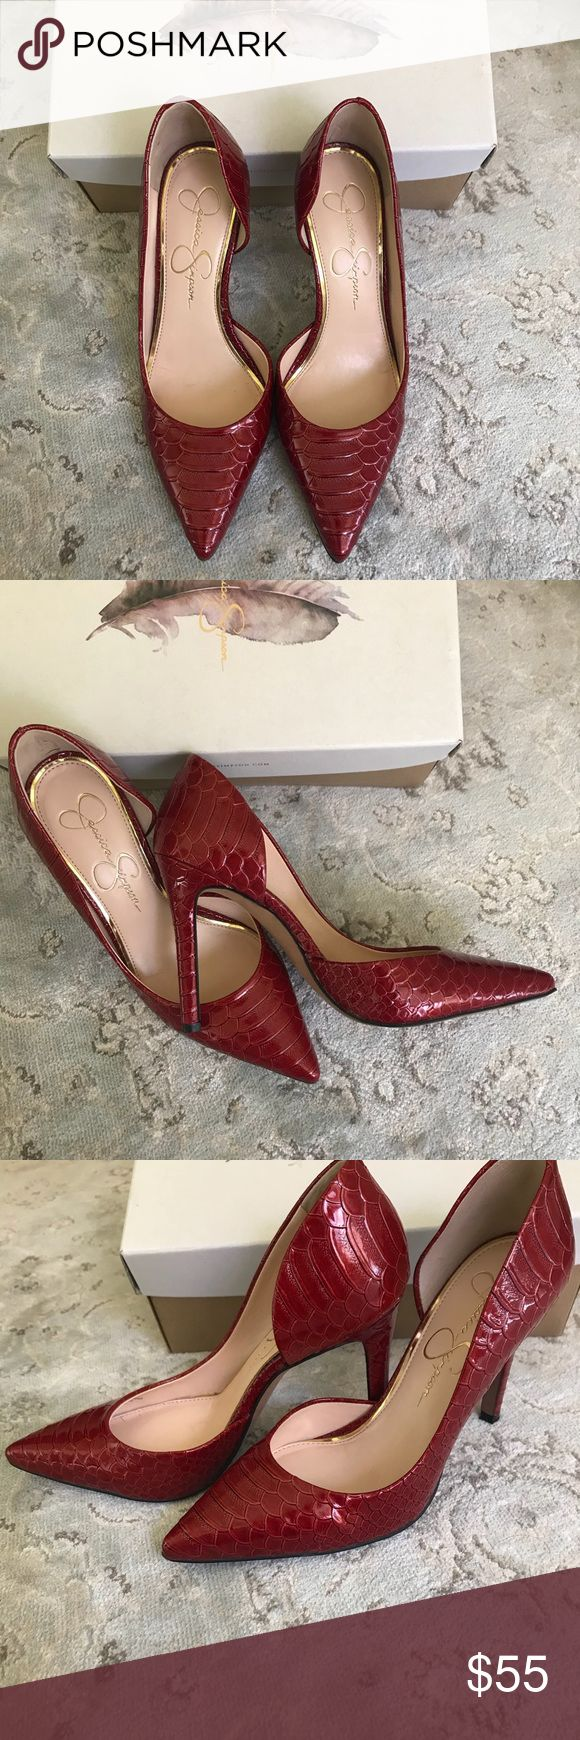 👠Heels by Jessica Simpson Red patten croc like material. Lightly used. Perfect for 🌲holiday wear. Jessica Simpson Shoes Heels